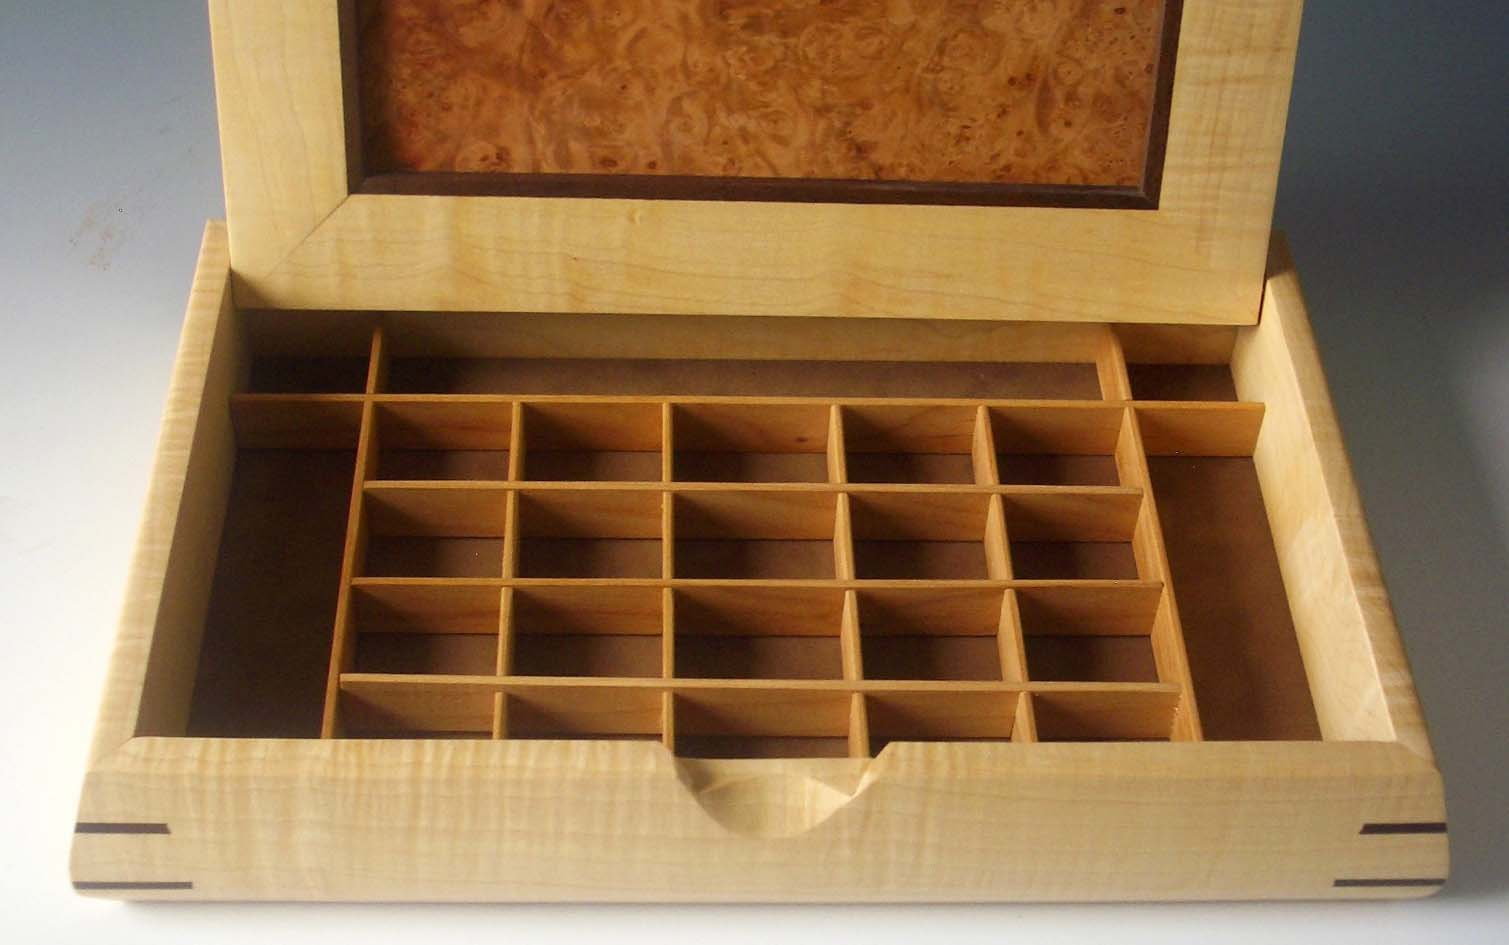 Mens jewelry box made of exotic woods that is shown open to reveal cubed compartments for jewelry